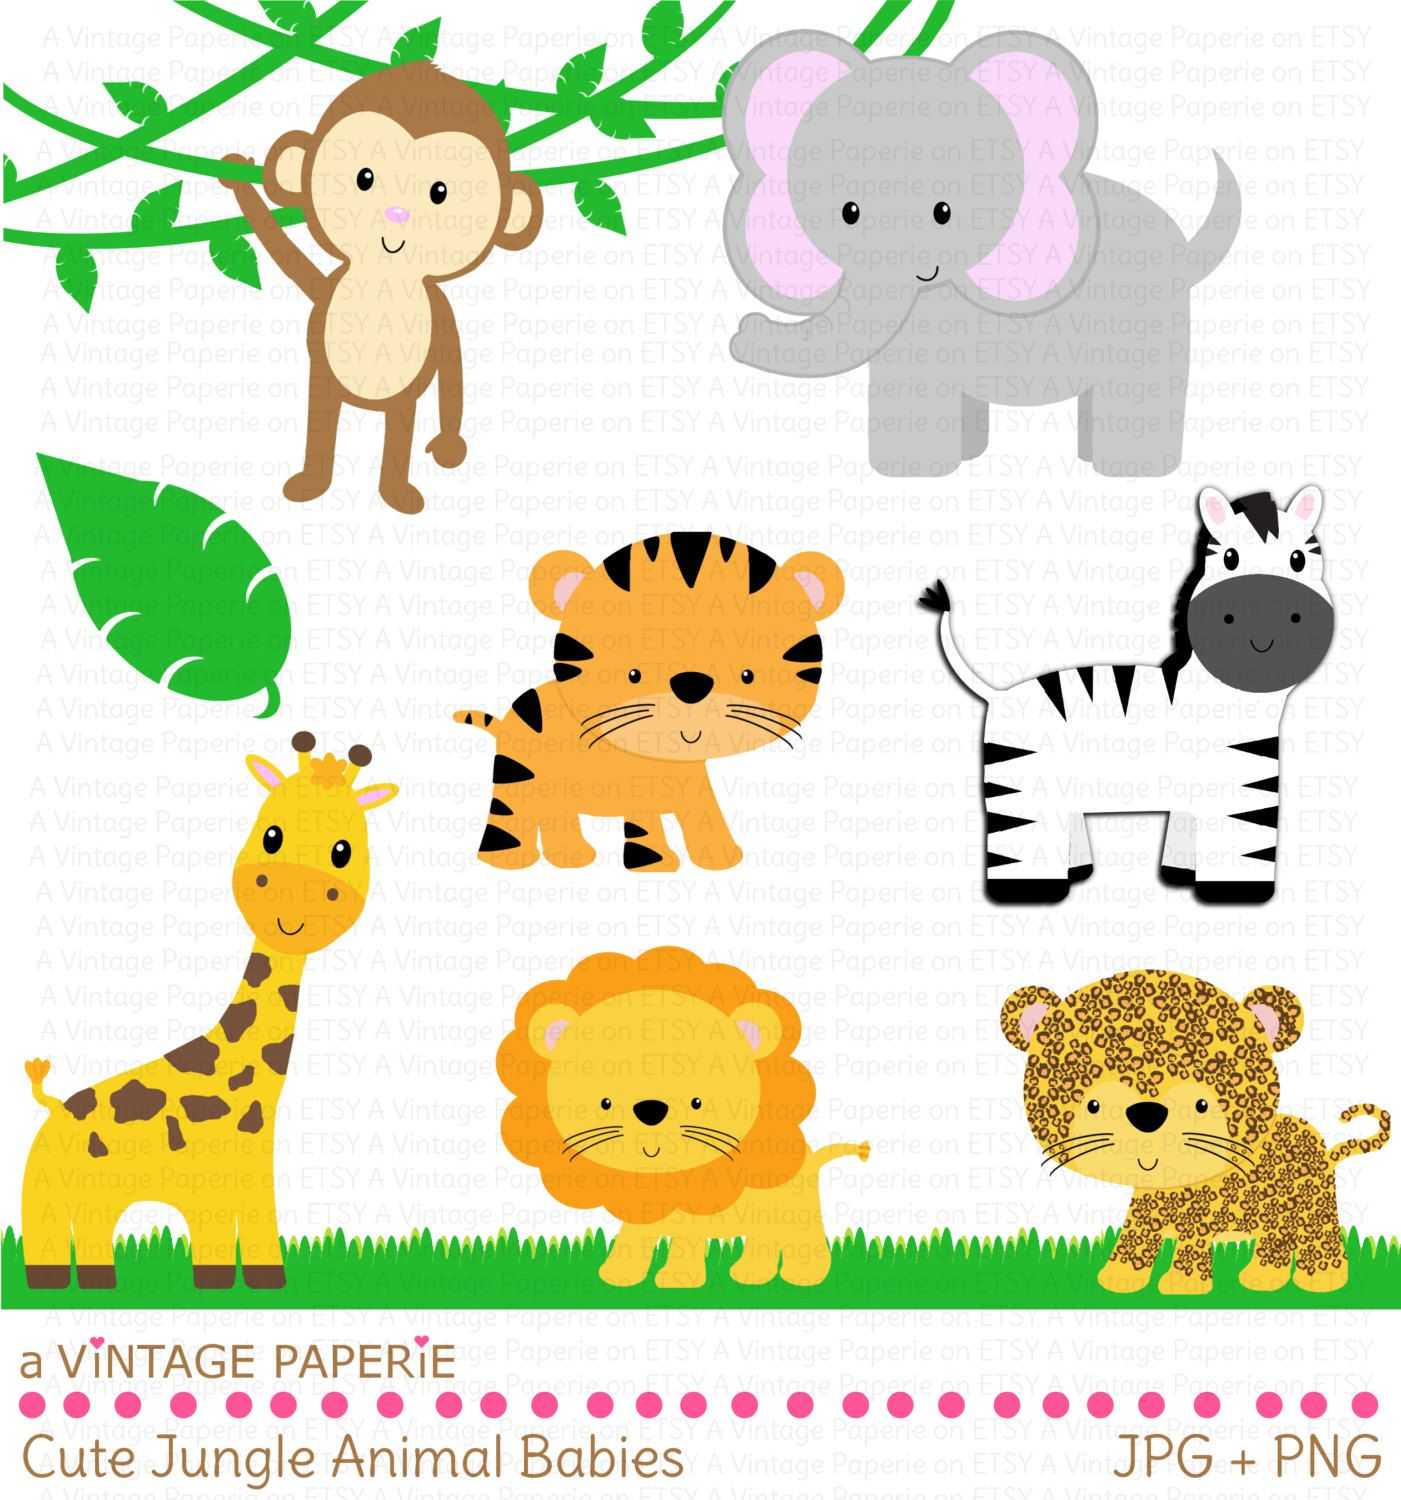 picture download Free large images first. Baby zoo animals clipart